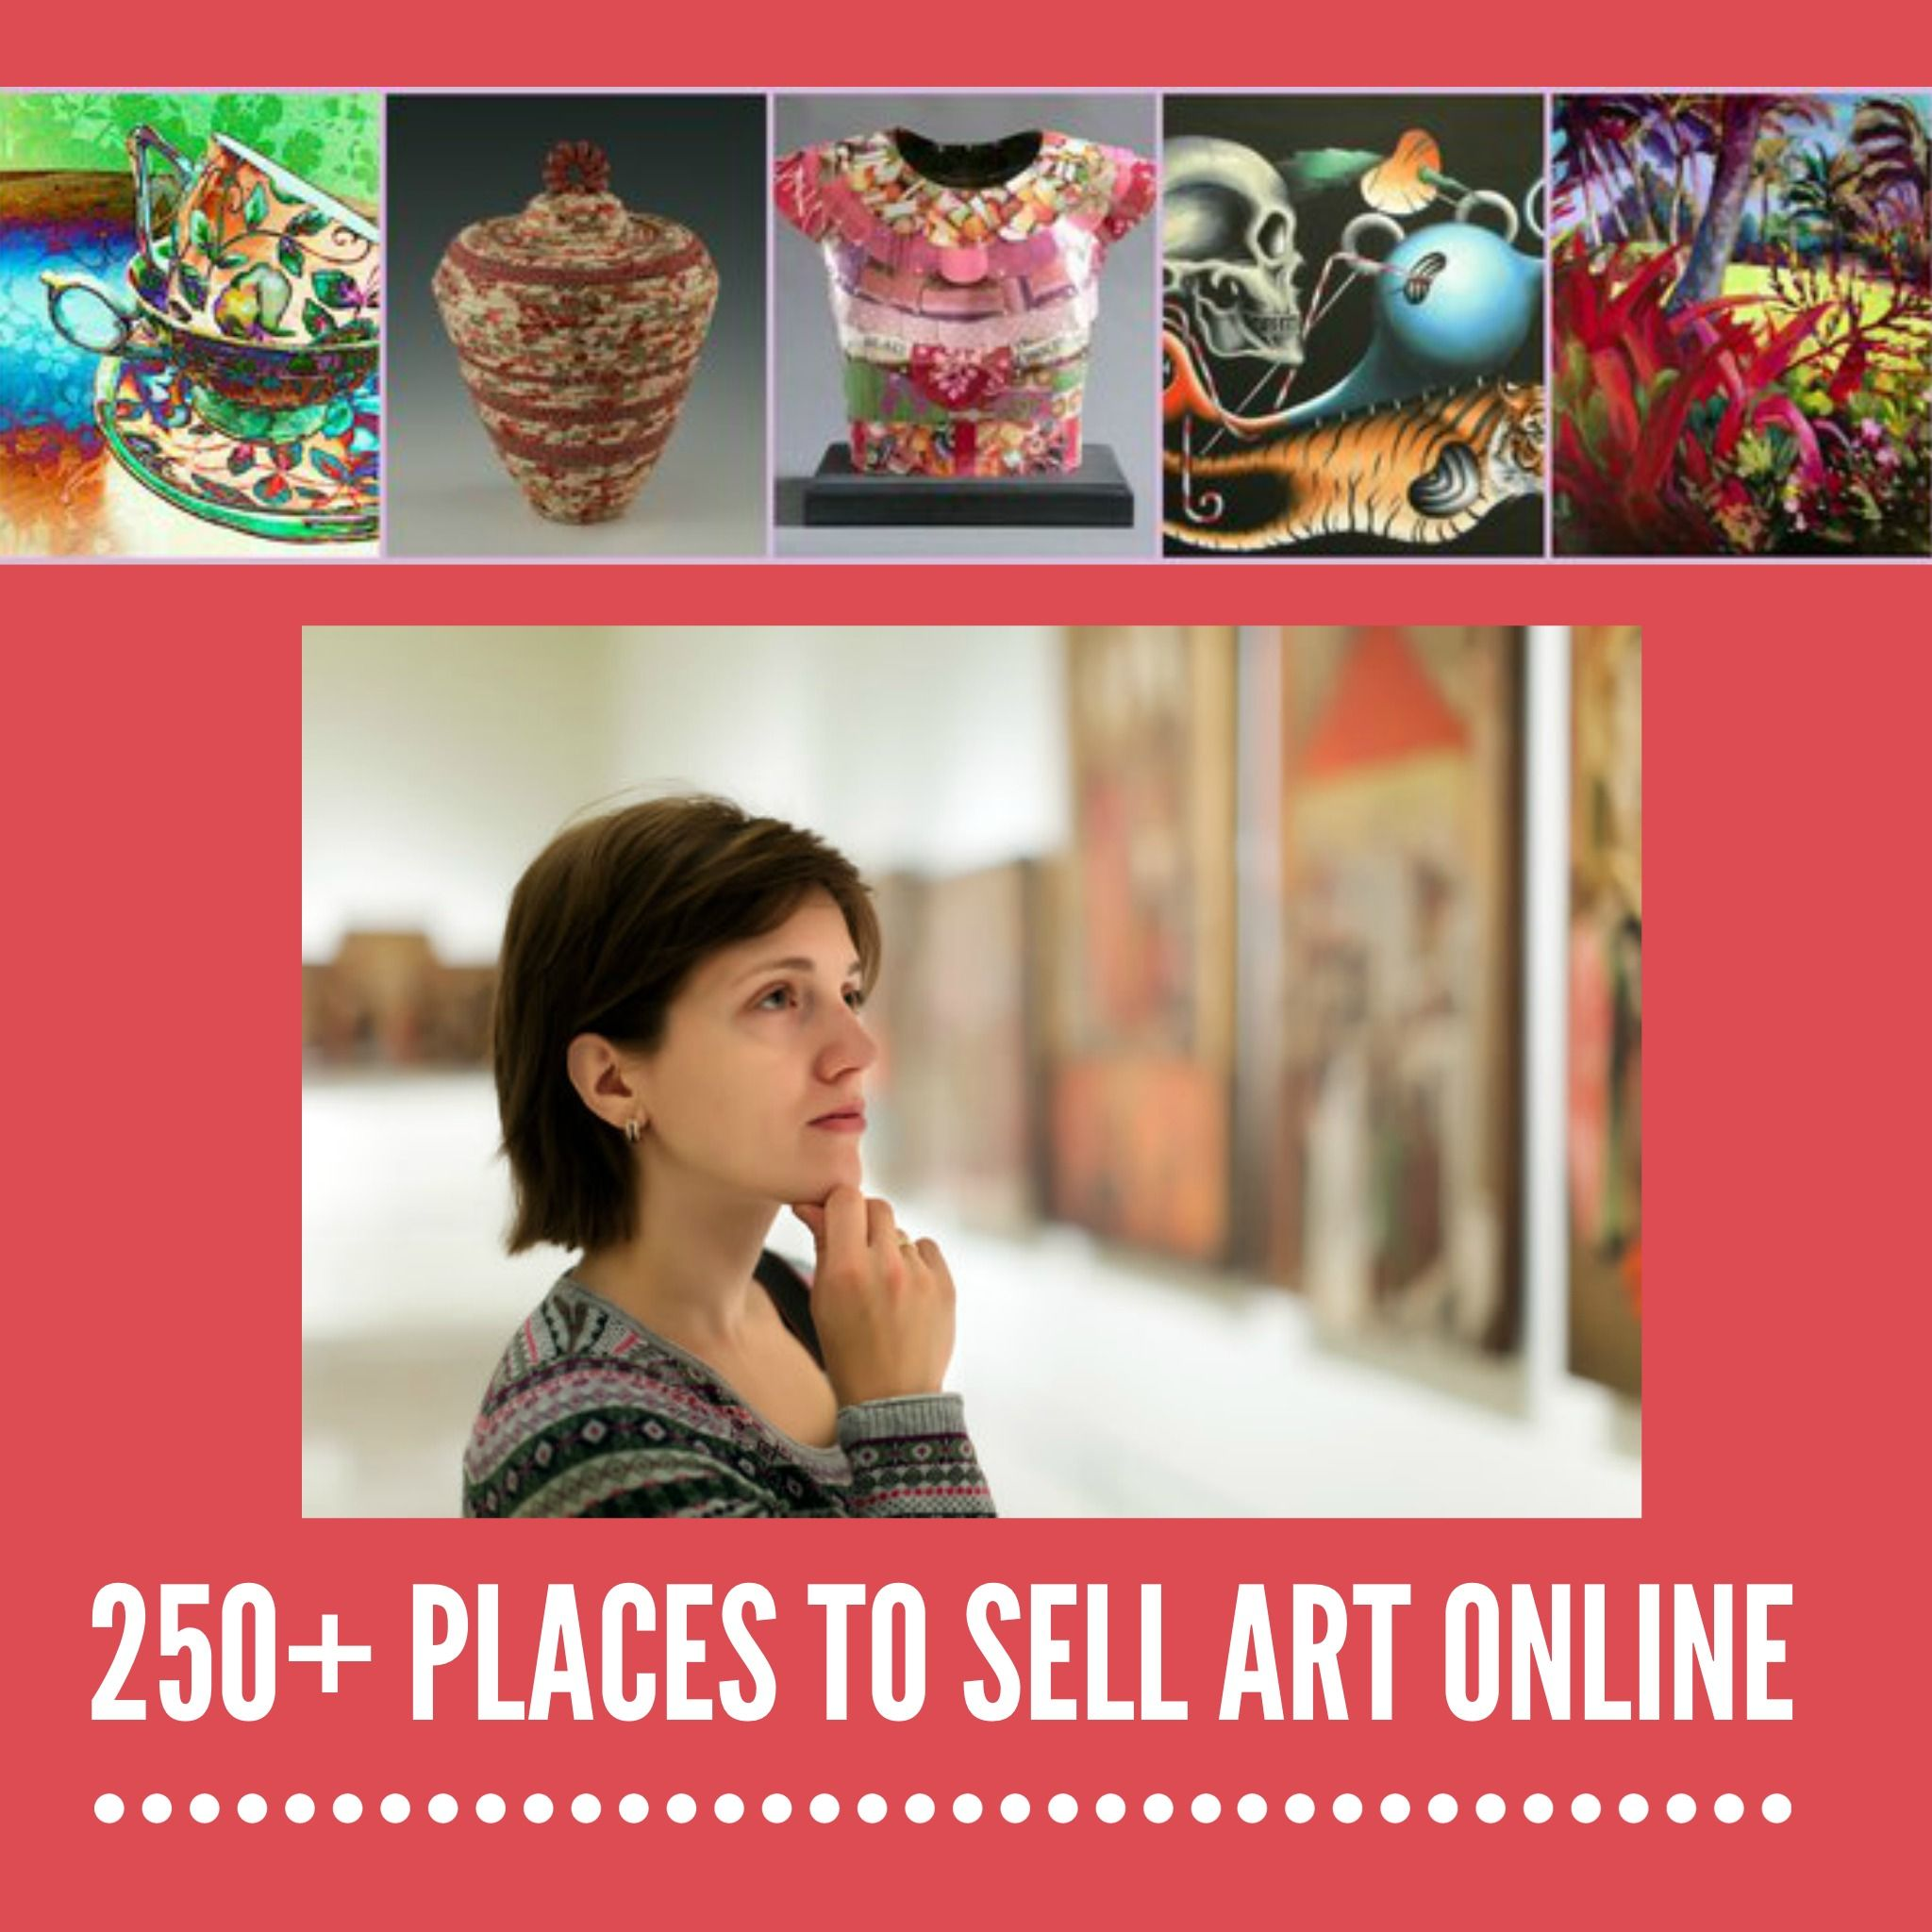 Places to sell items online for free